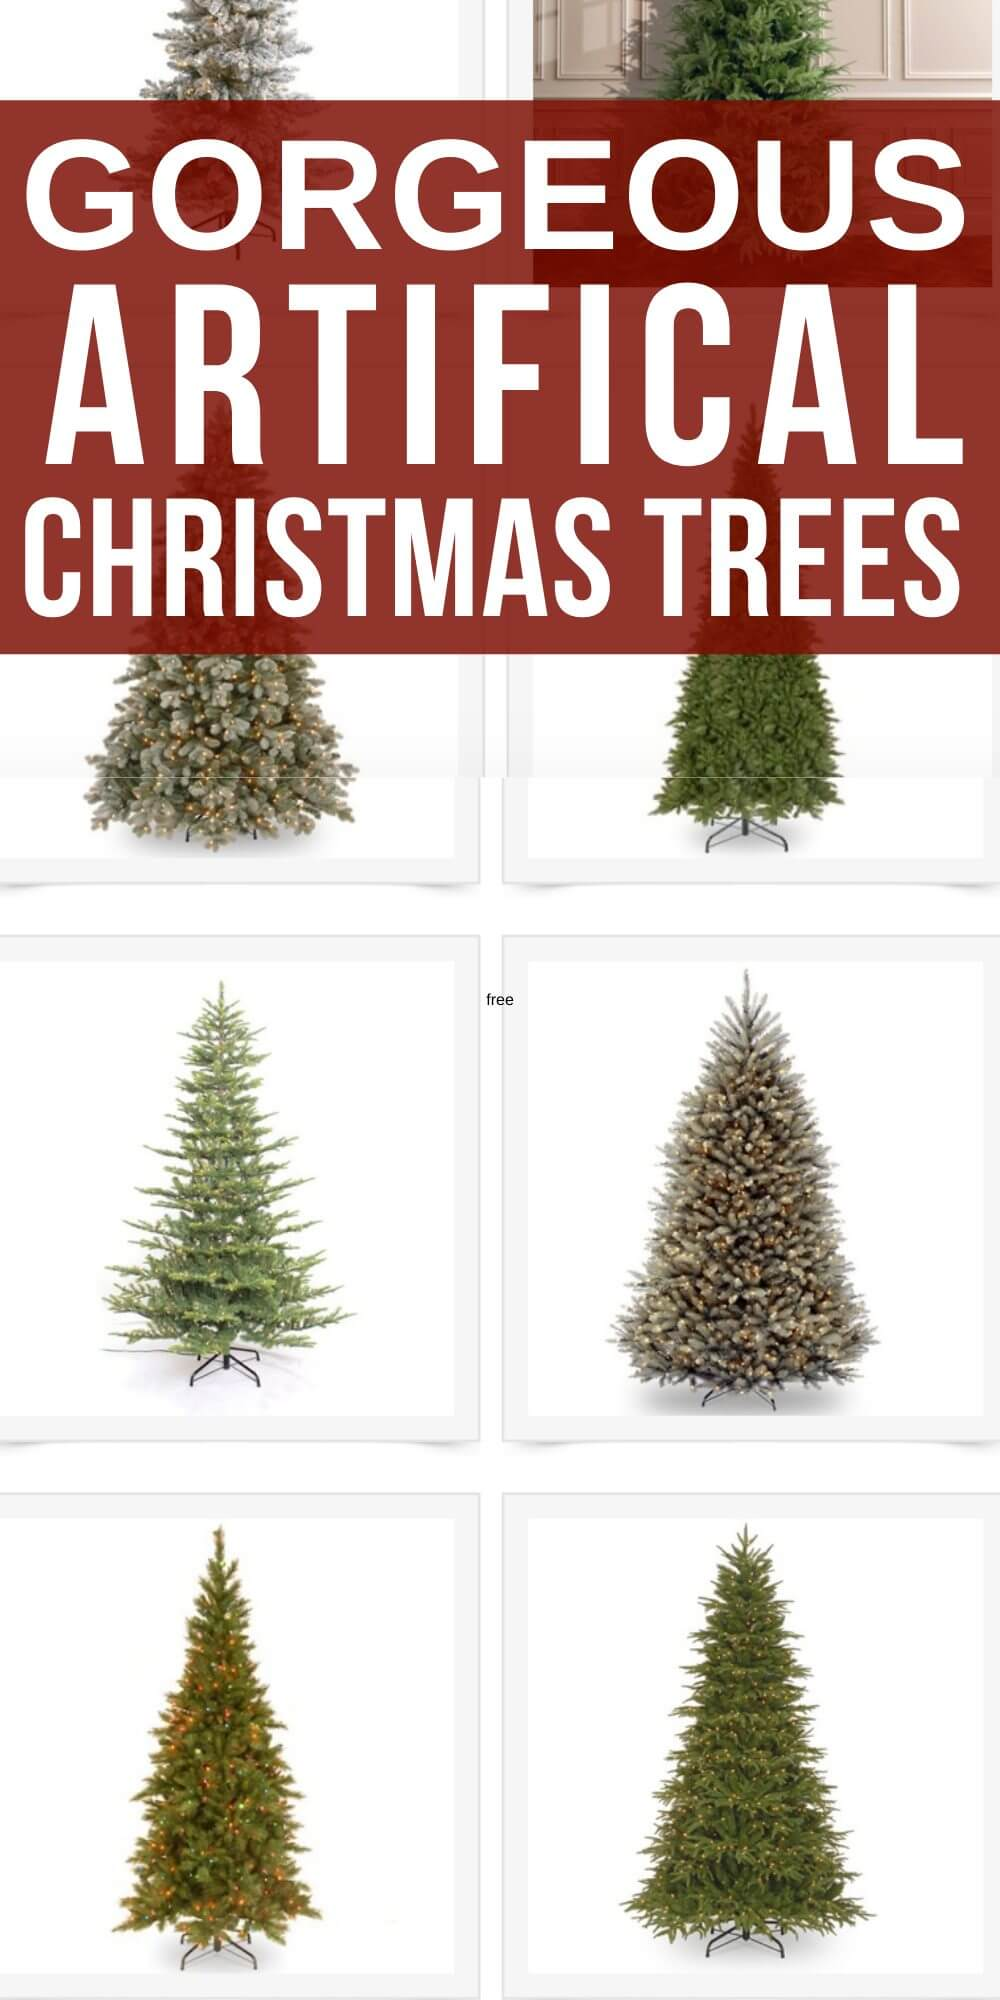 Are you looking for just the right artificial Christmas tree for you home? One that is gorgeous and also affordable? Check this collection out! There are so many amazing options.